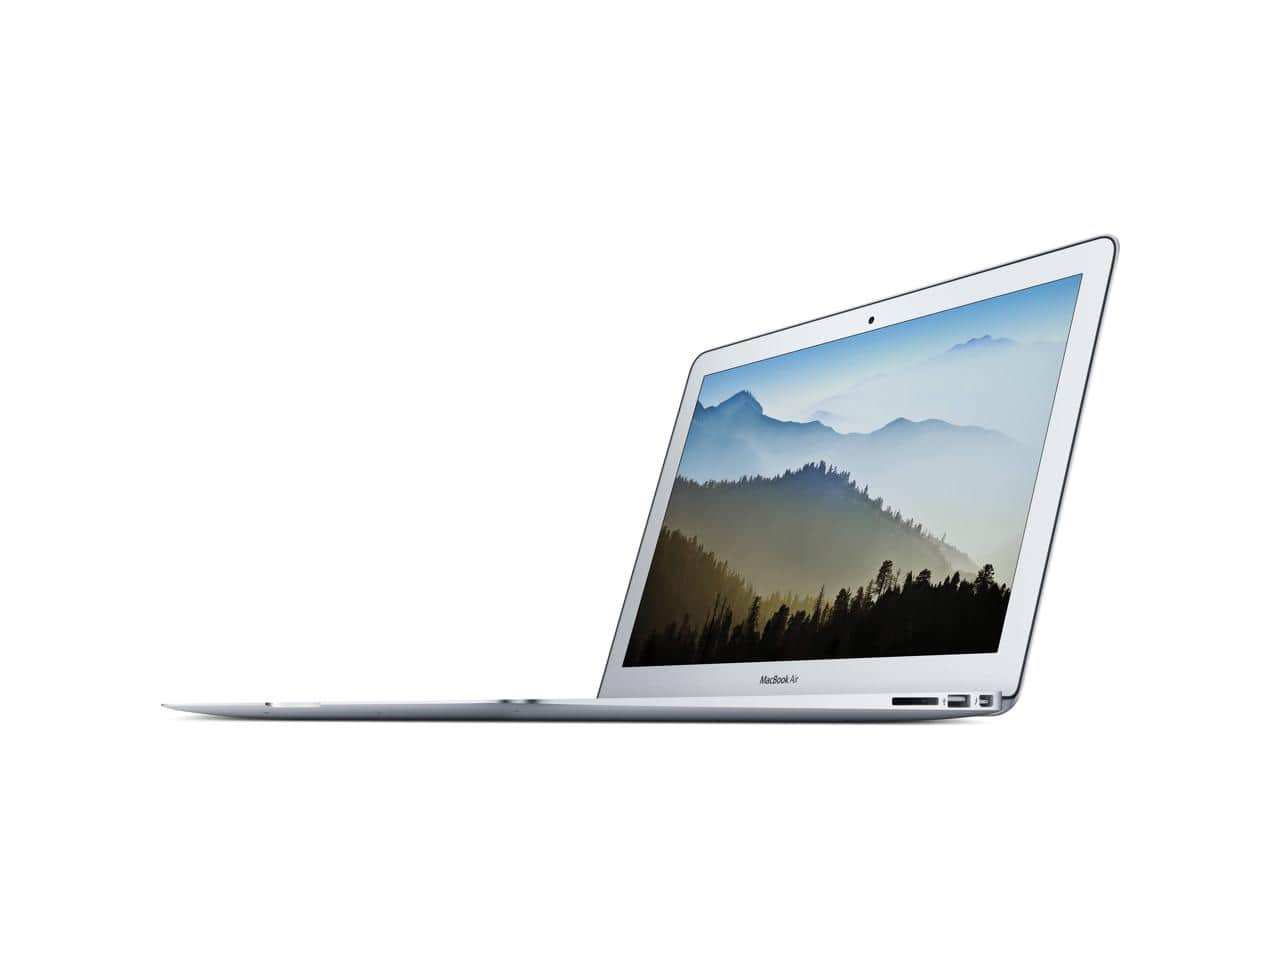 "Apple MacBook Air 13.3"" Notebook - Core i5 1.8 GHz - 8 GB RAM - 128 GB SSD - MQD32LL/A (Mid 2017) Refurbished $779.99 after $50.00 rebate card + FREE SHIPPING"